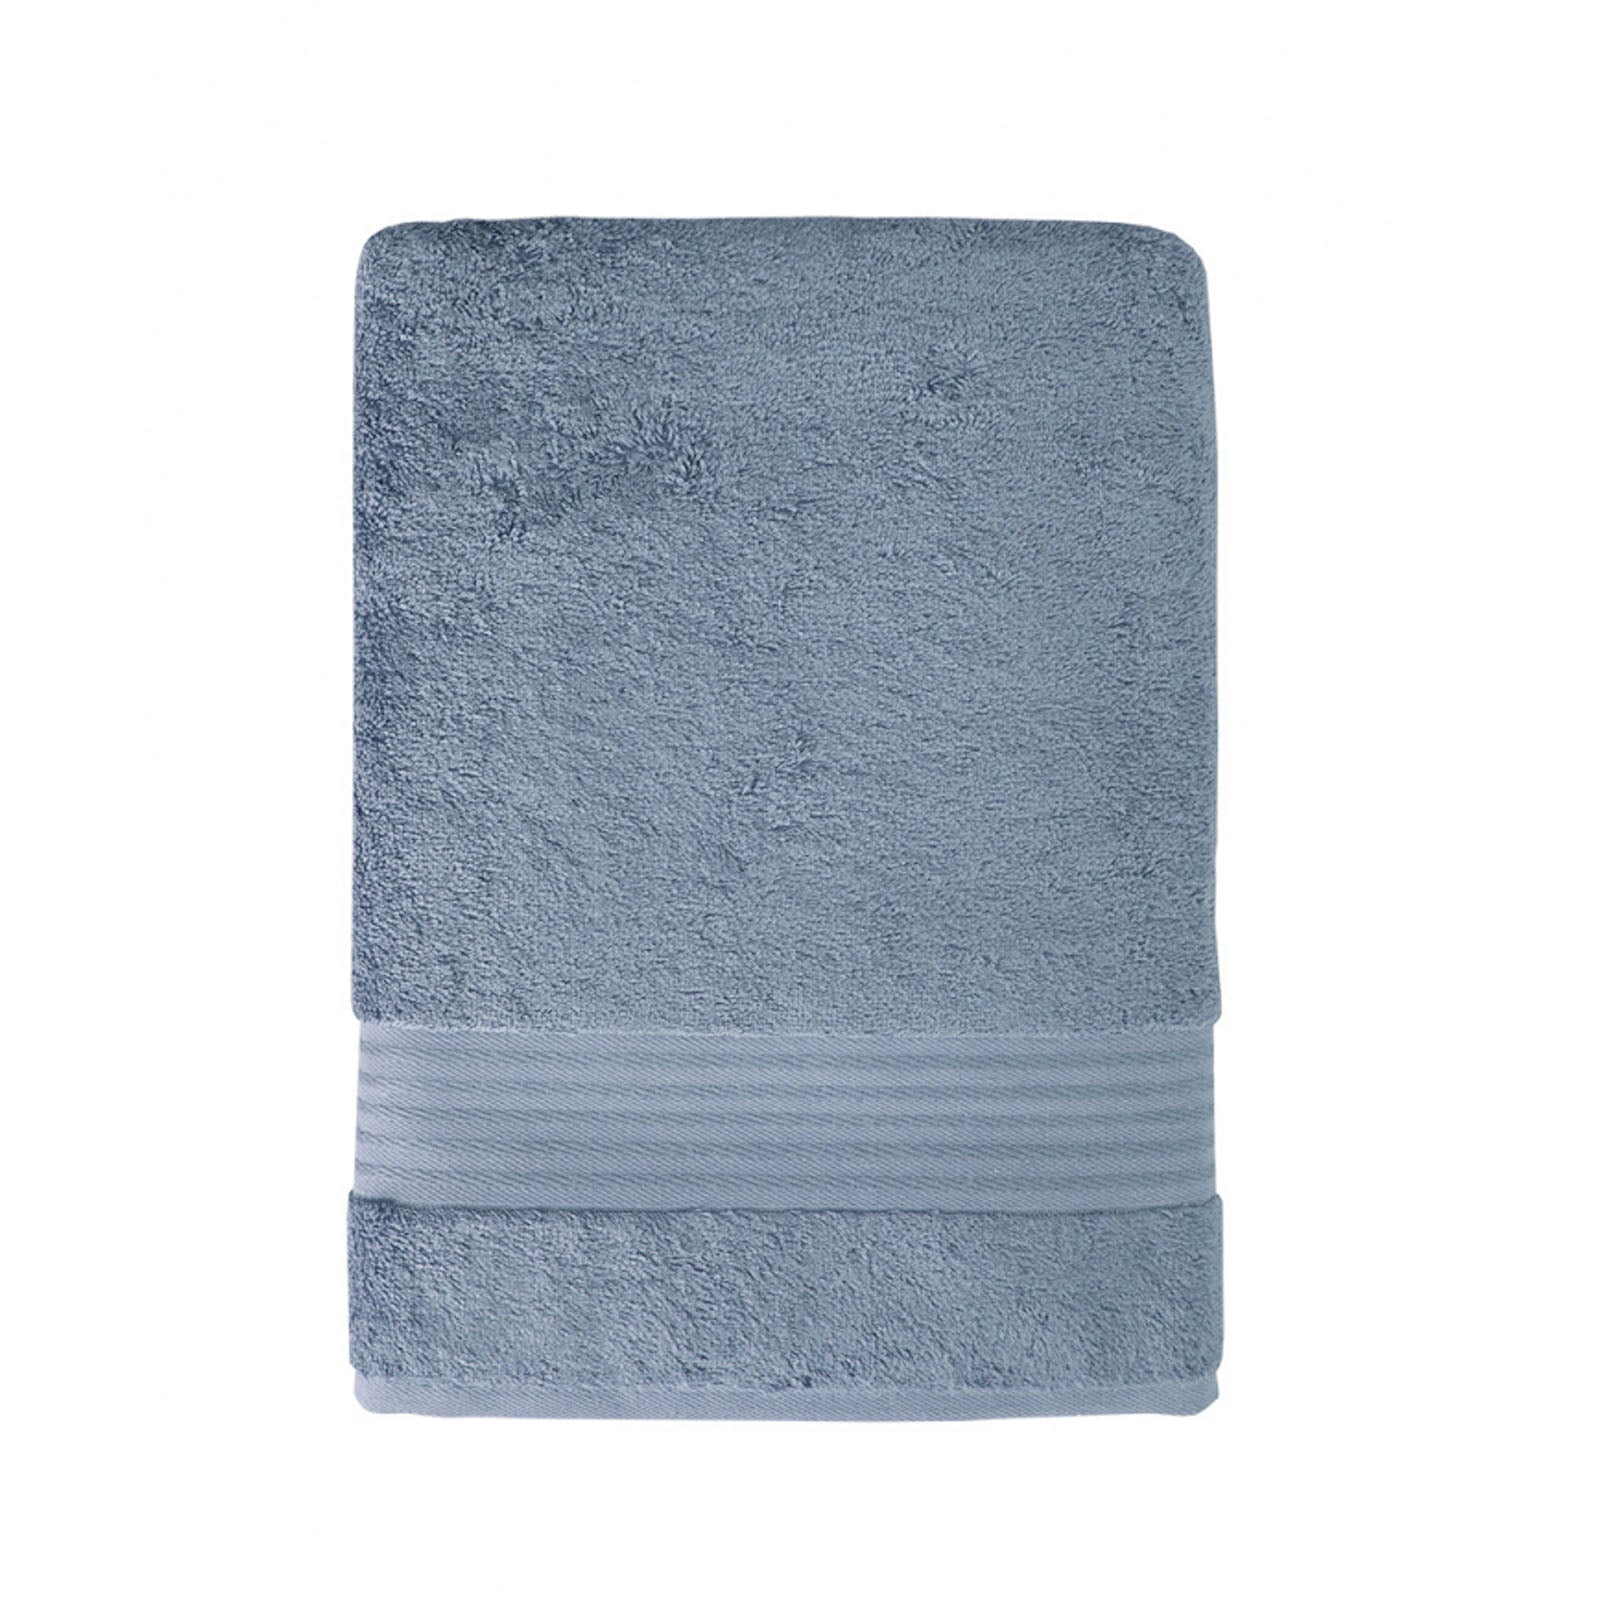 85X150 PURE SOFT towel  200.13.01.0140 - ebarza